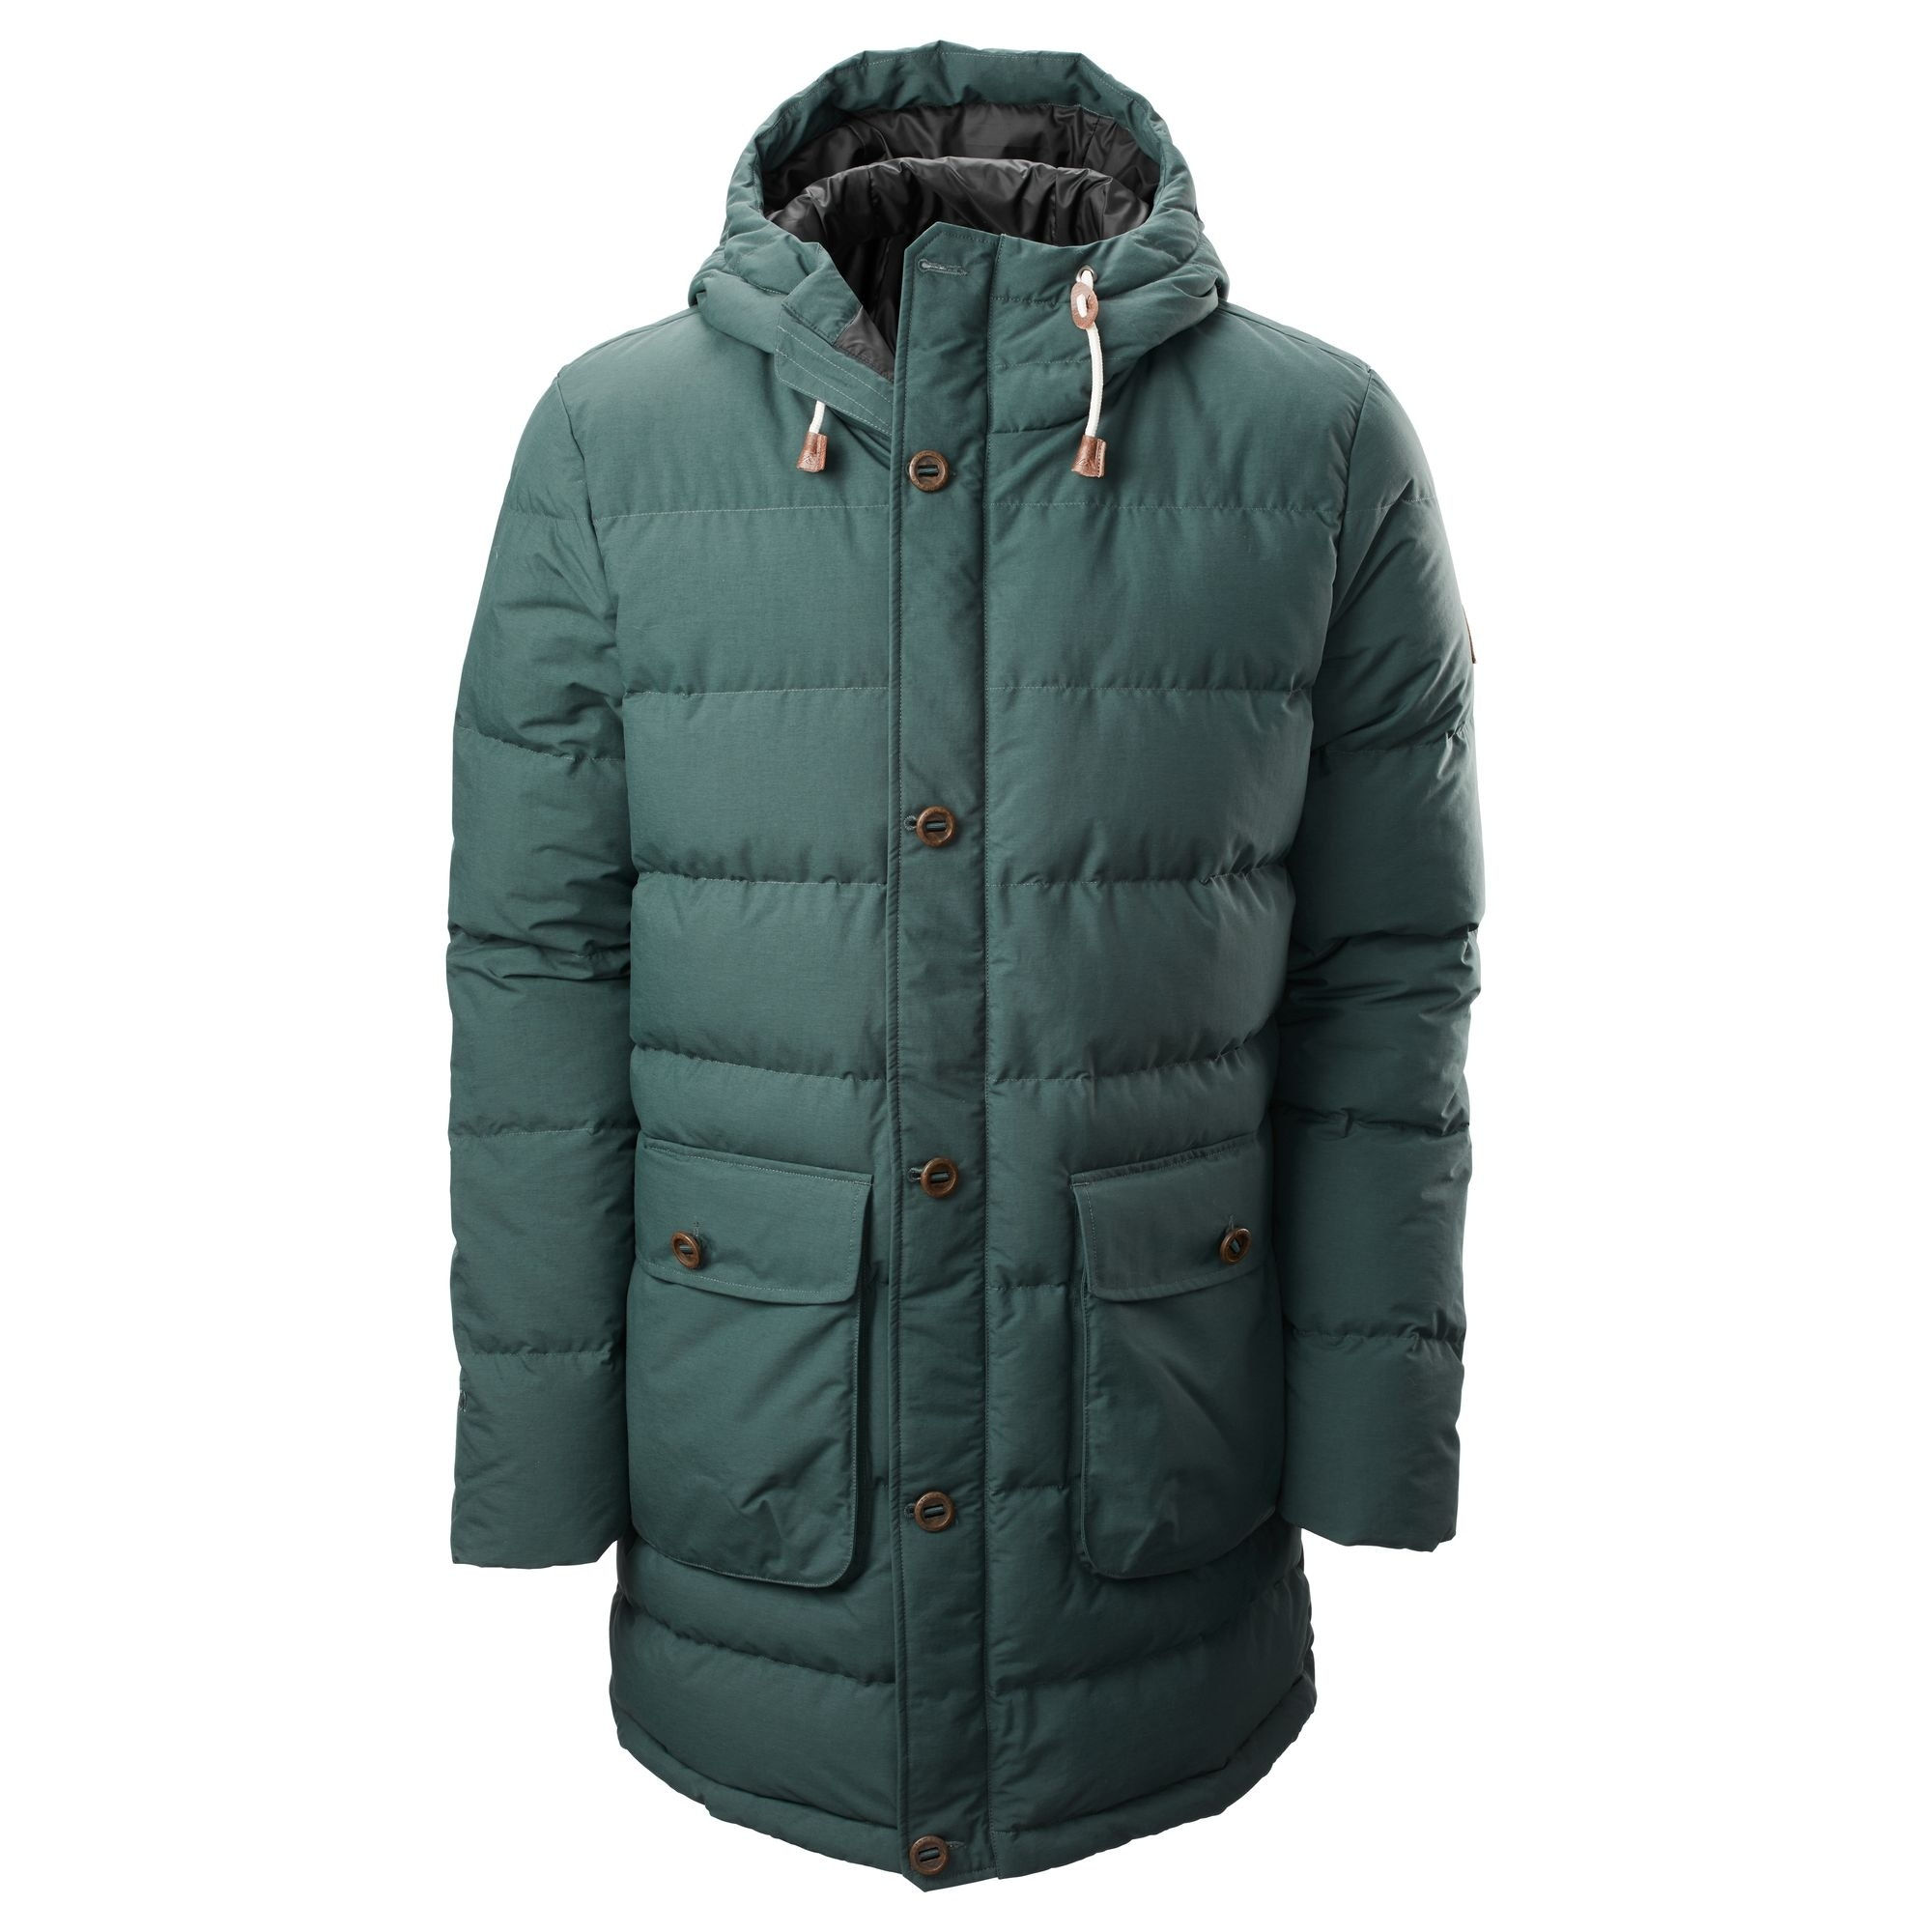 Hiking Jackets Active Men Winter Duck Down Jacket Outdoor Hooded Camping Hiking Trekking Windproof Cold Proof Windbreaker Thick Male Warm Overcoat 100% Guarantee Camping & Hiking